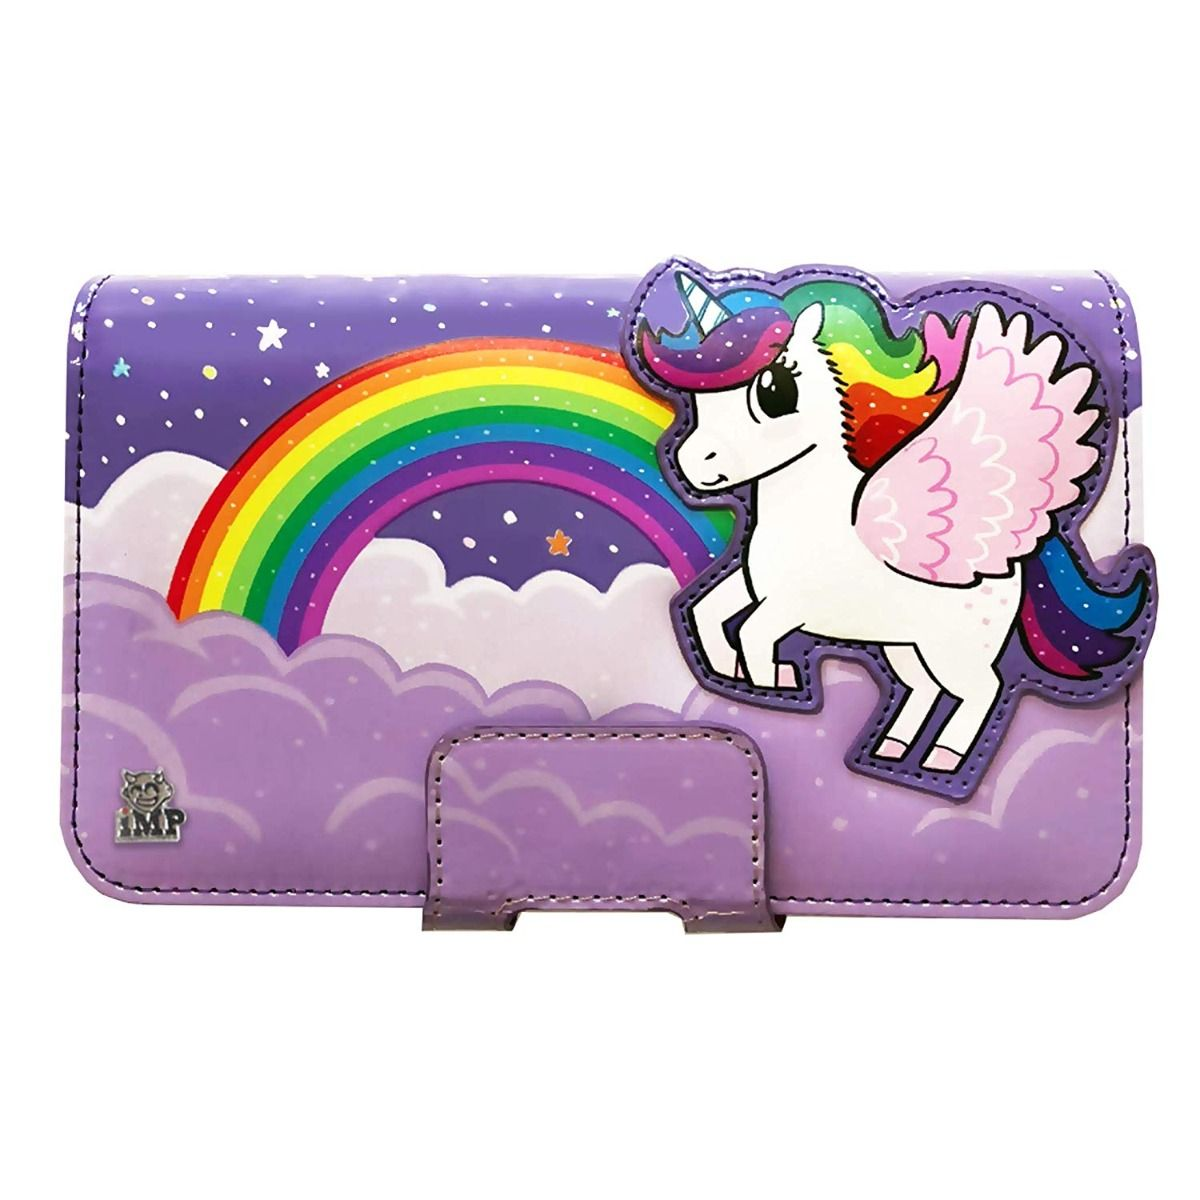 iMP 2DS XL Unicorn Carry Case (Nintendo 2DS XL)